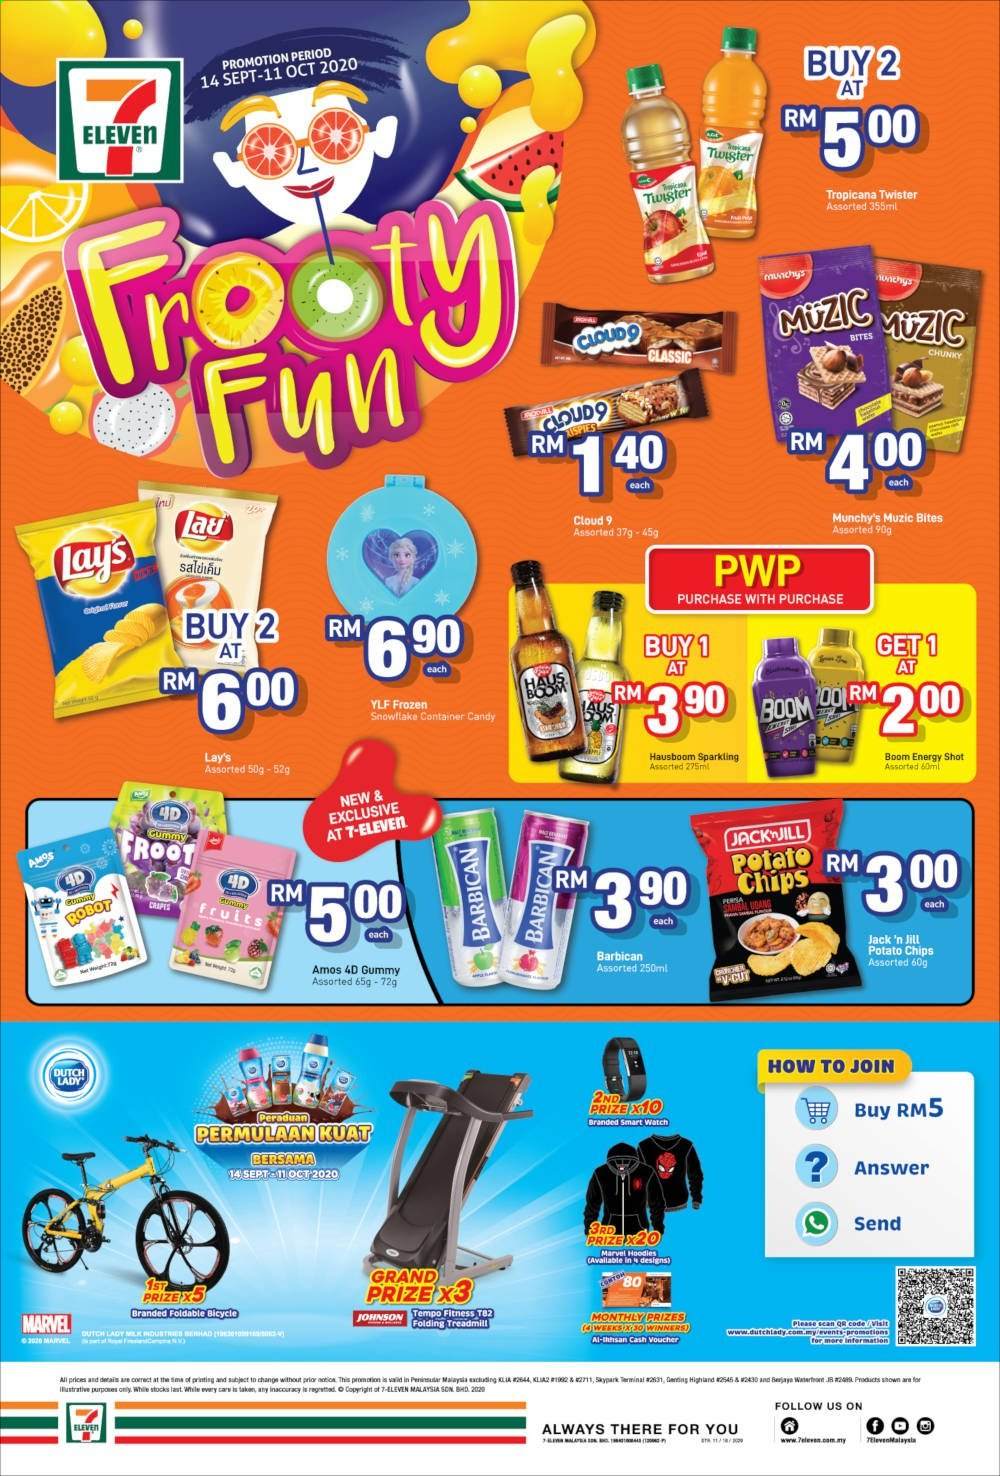 Iklan 7 Eleven - 14.09.2020 - 11.10.2020 - Produk jualan - always, container, frozen, grand, hoodie, chips, marvel, potato chips, robot, car, candy, gummy, lay's, twister, treadmill, bites, smart watch. Halaman 1.